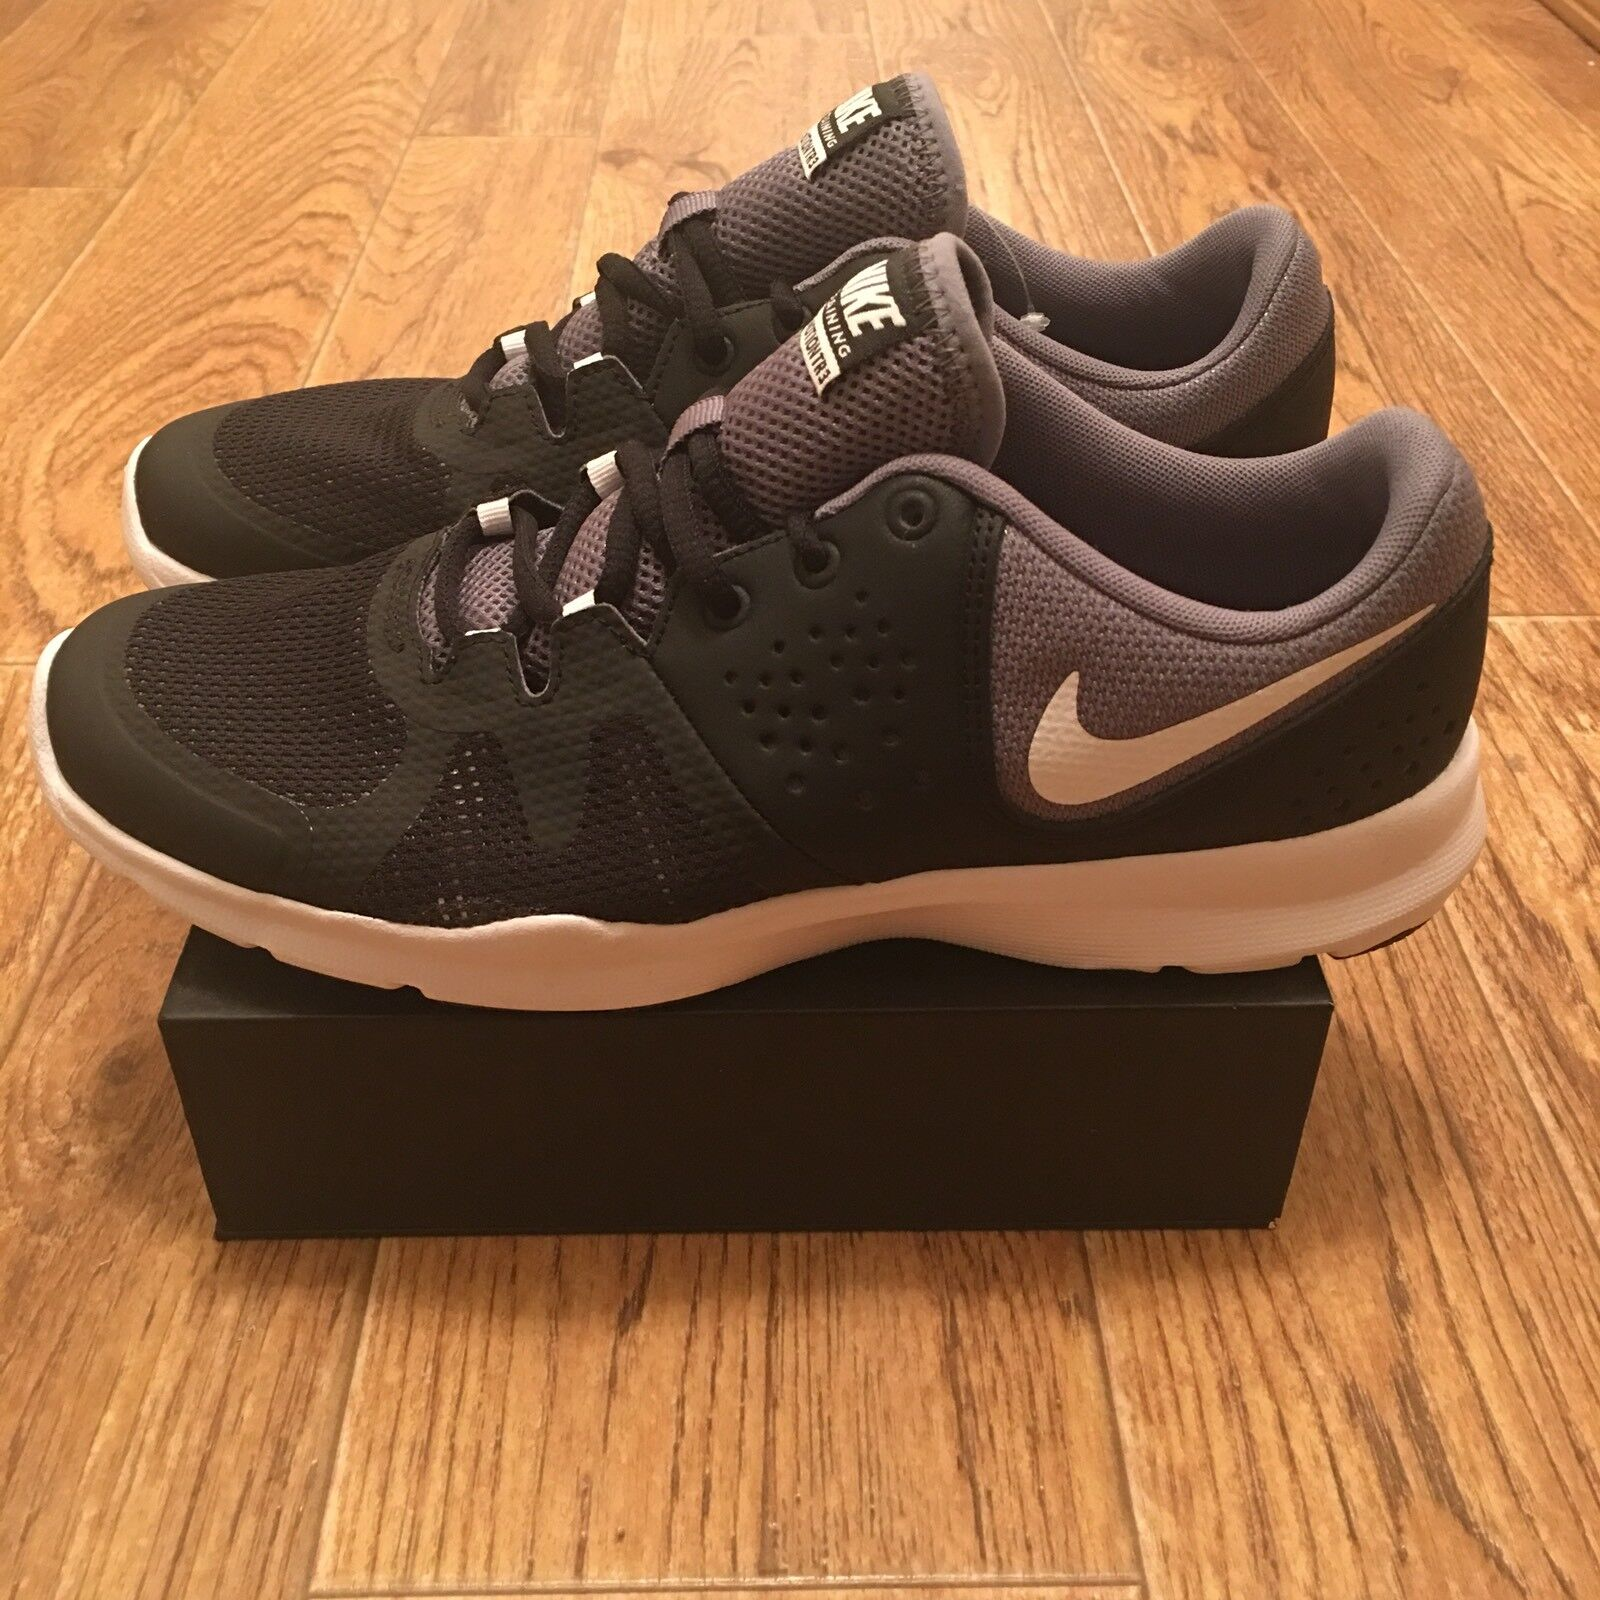 Nike W Core Motion TR 3 844651 001 Black/Grey/White Women's Training Shoes NEW